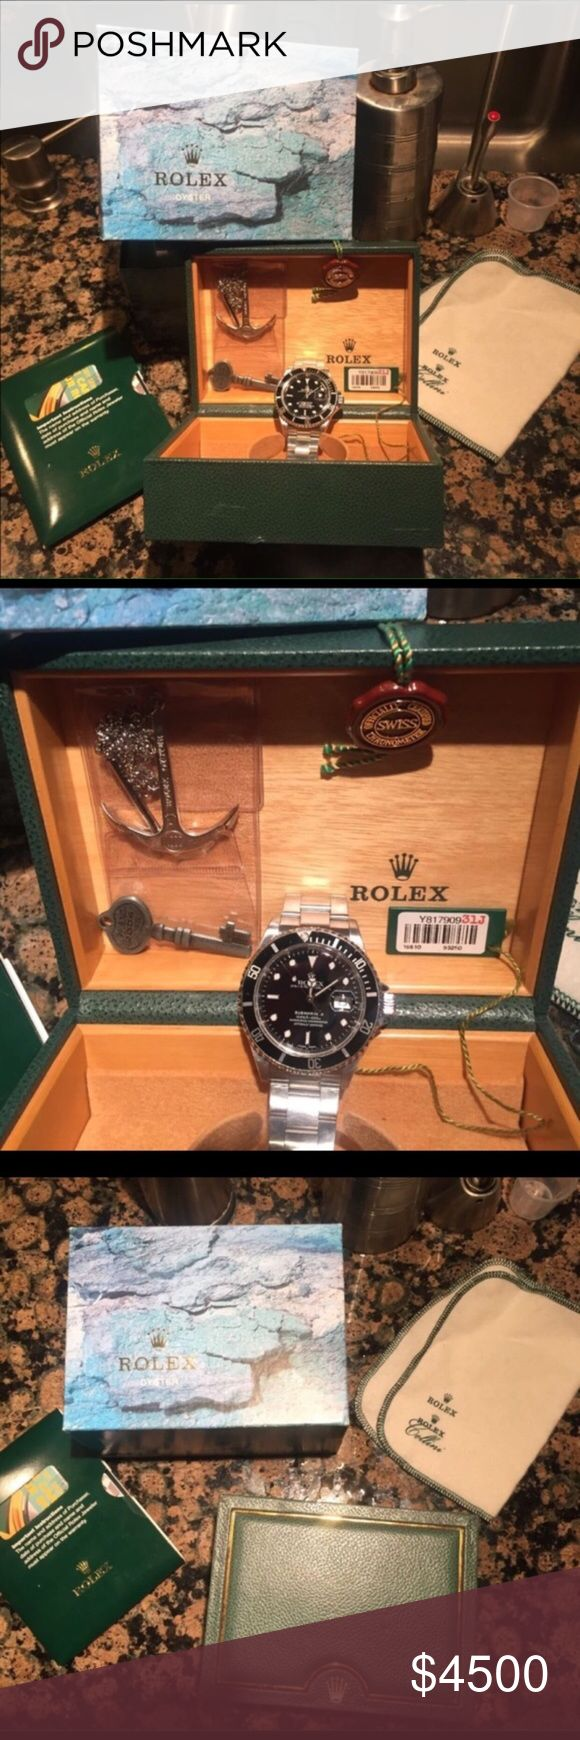 Rolex Submariner Oyster 16610 Exquisite detail. Barely used with all original tags accessories and boxes. Excellent condition, like new any questions contact me at 501-232-8532. Rolex Accessories